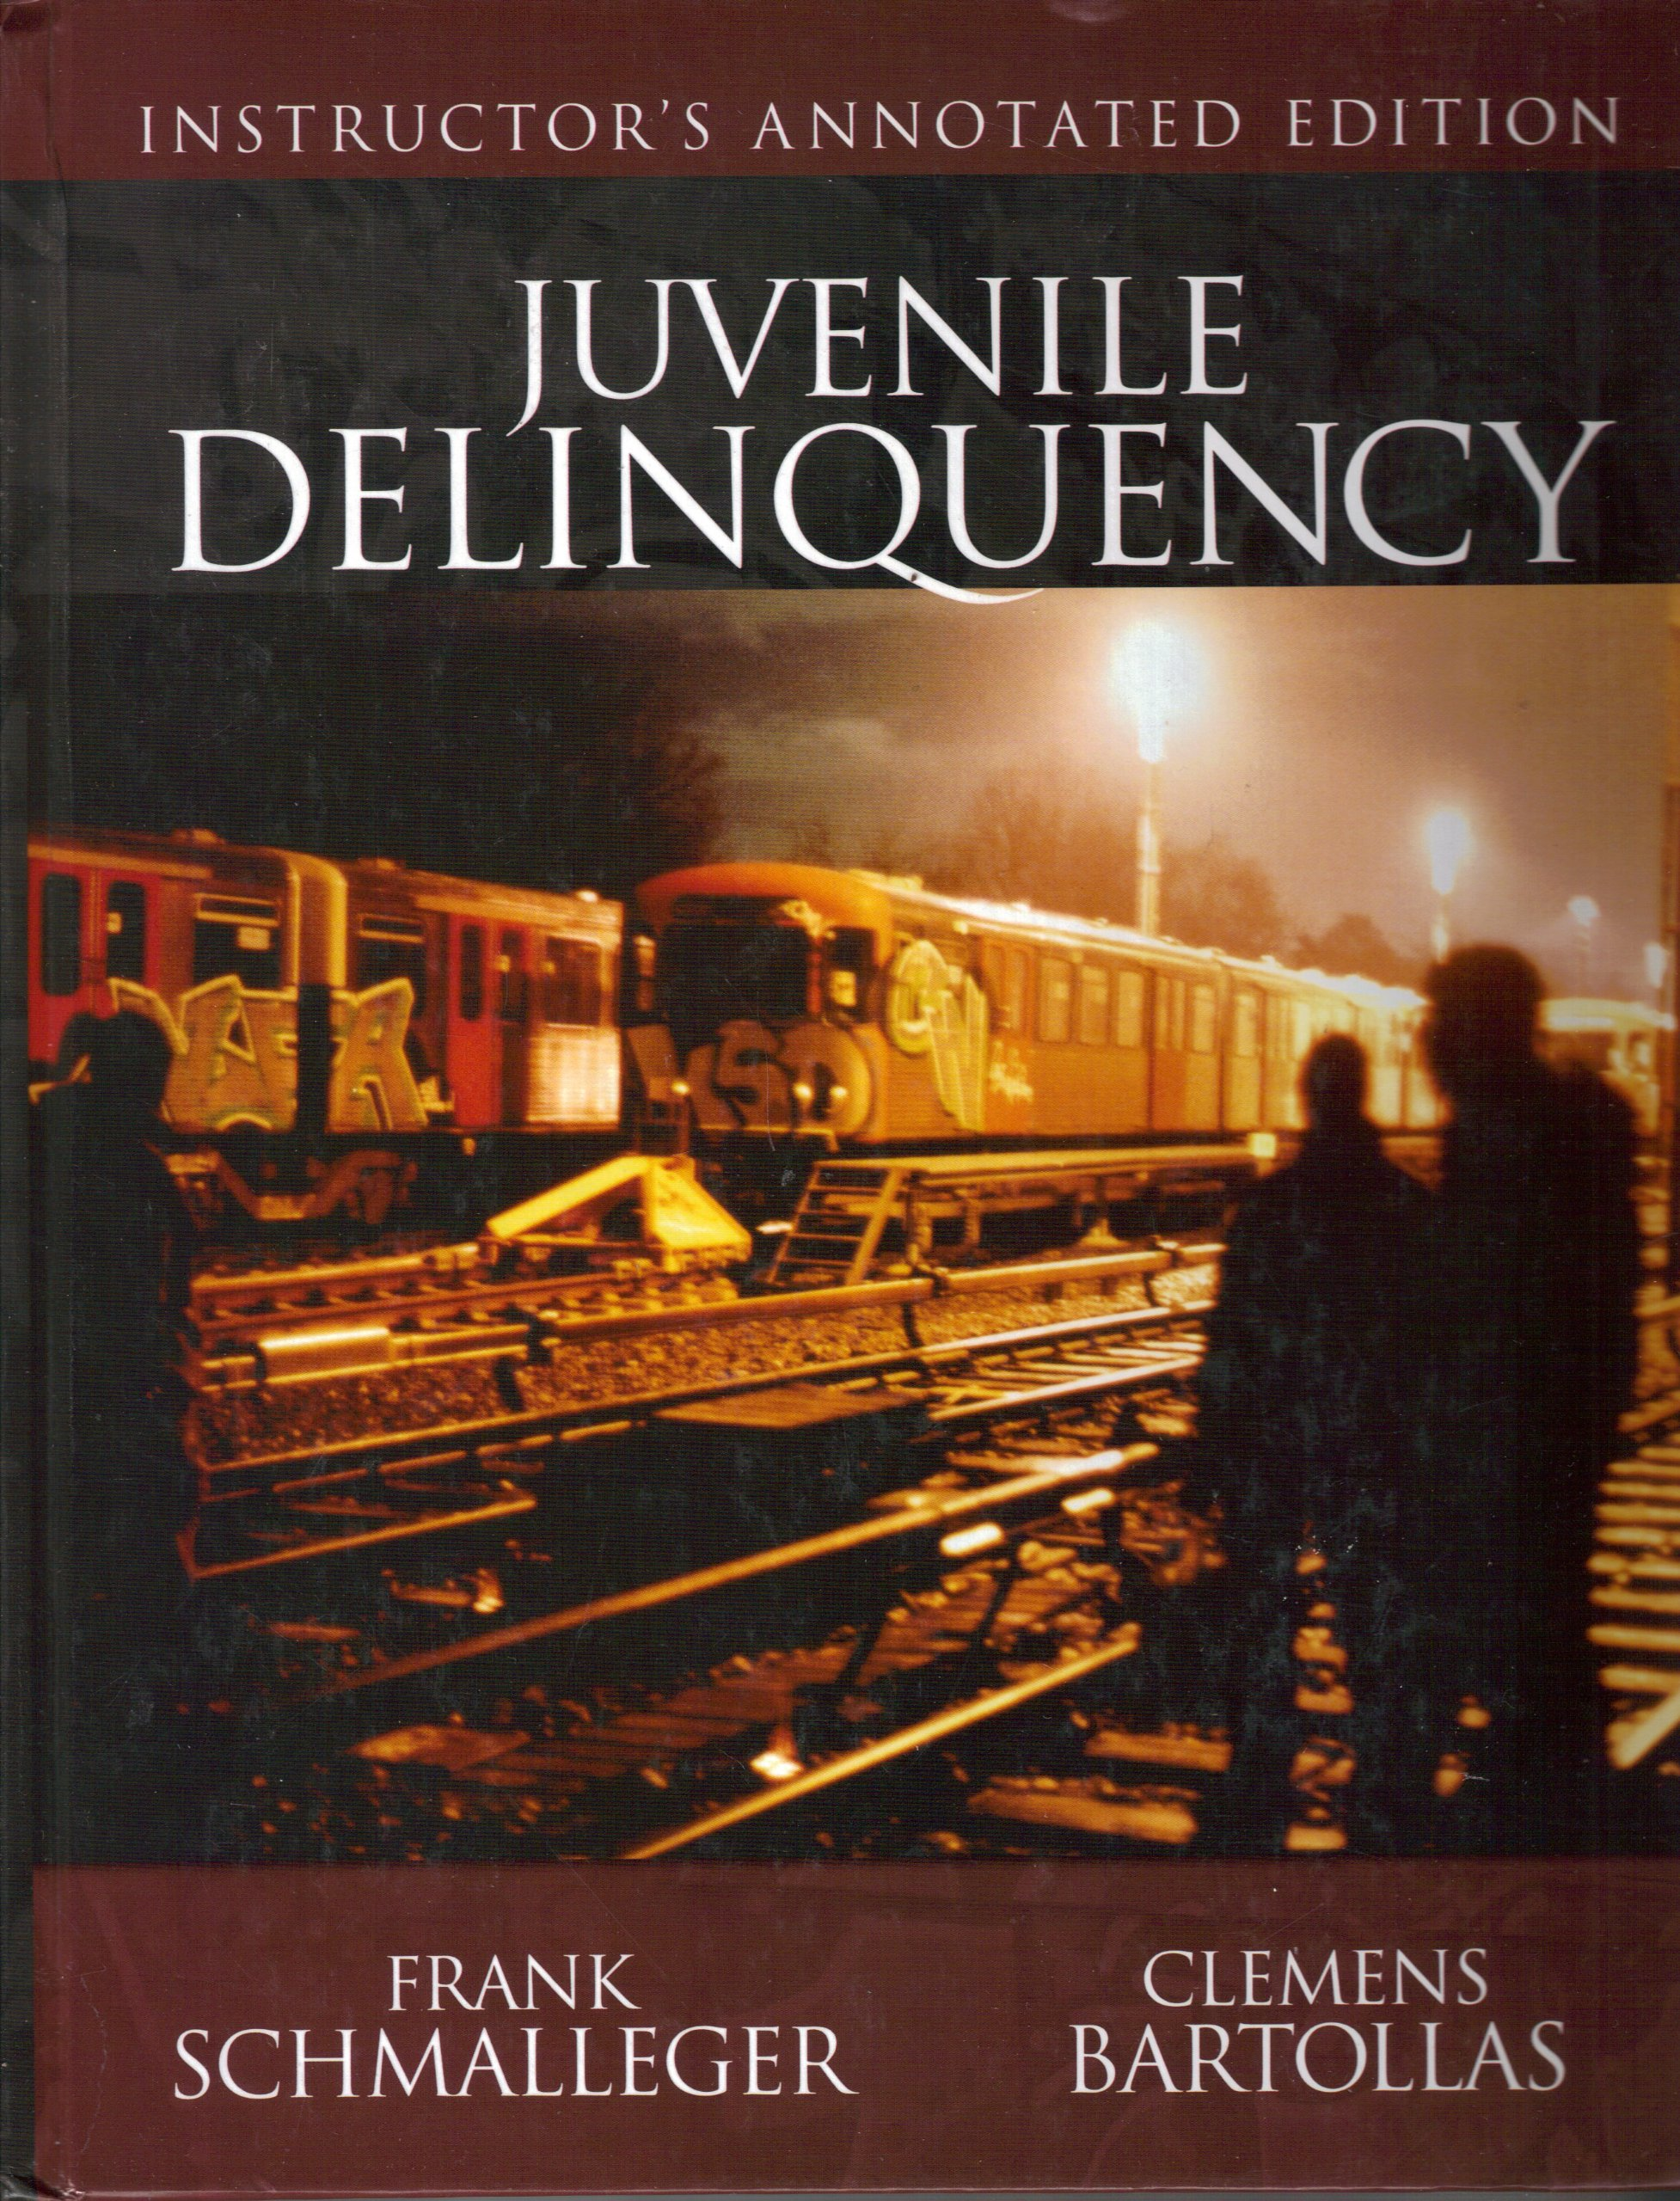 Download Juvenile Delinquency (Instructor's Annotated Edition) PDF